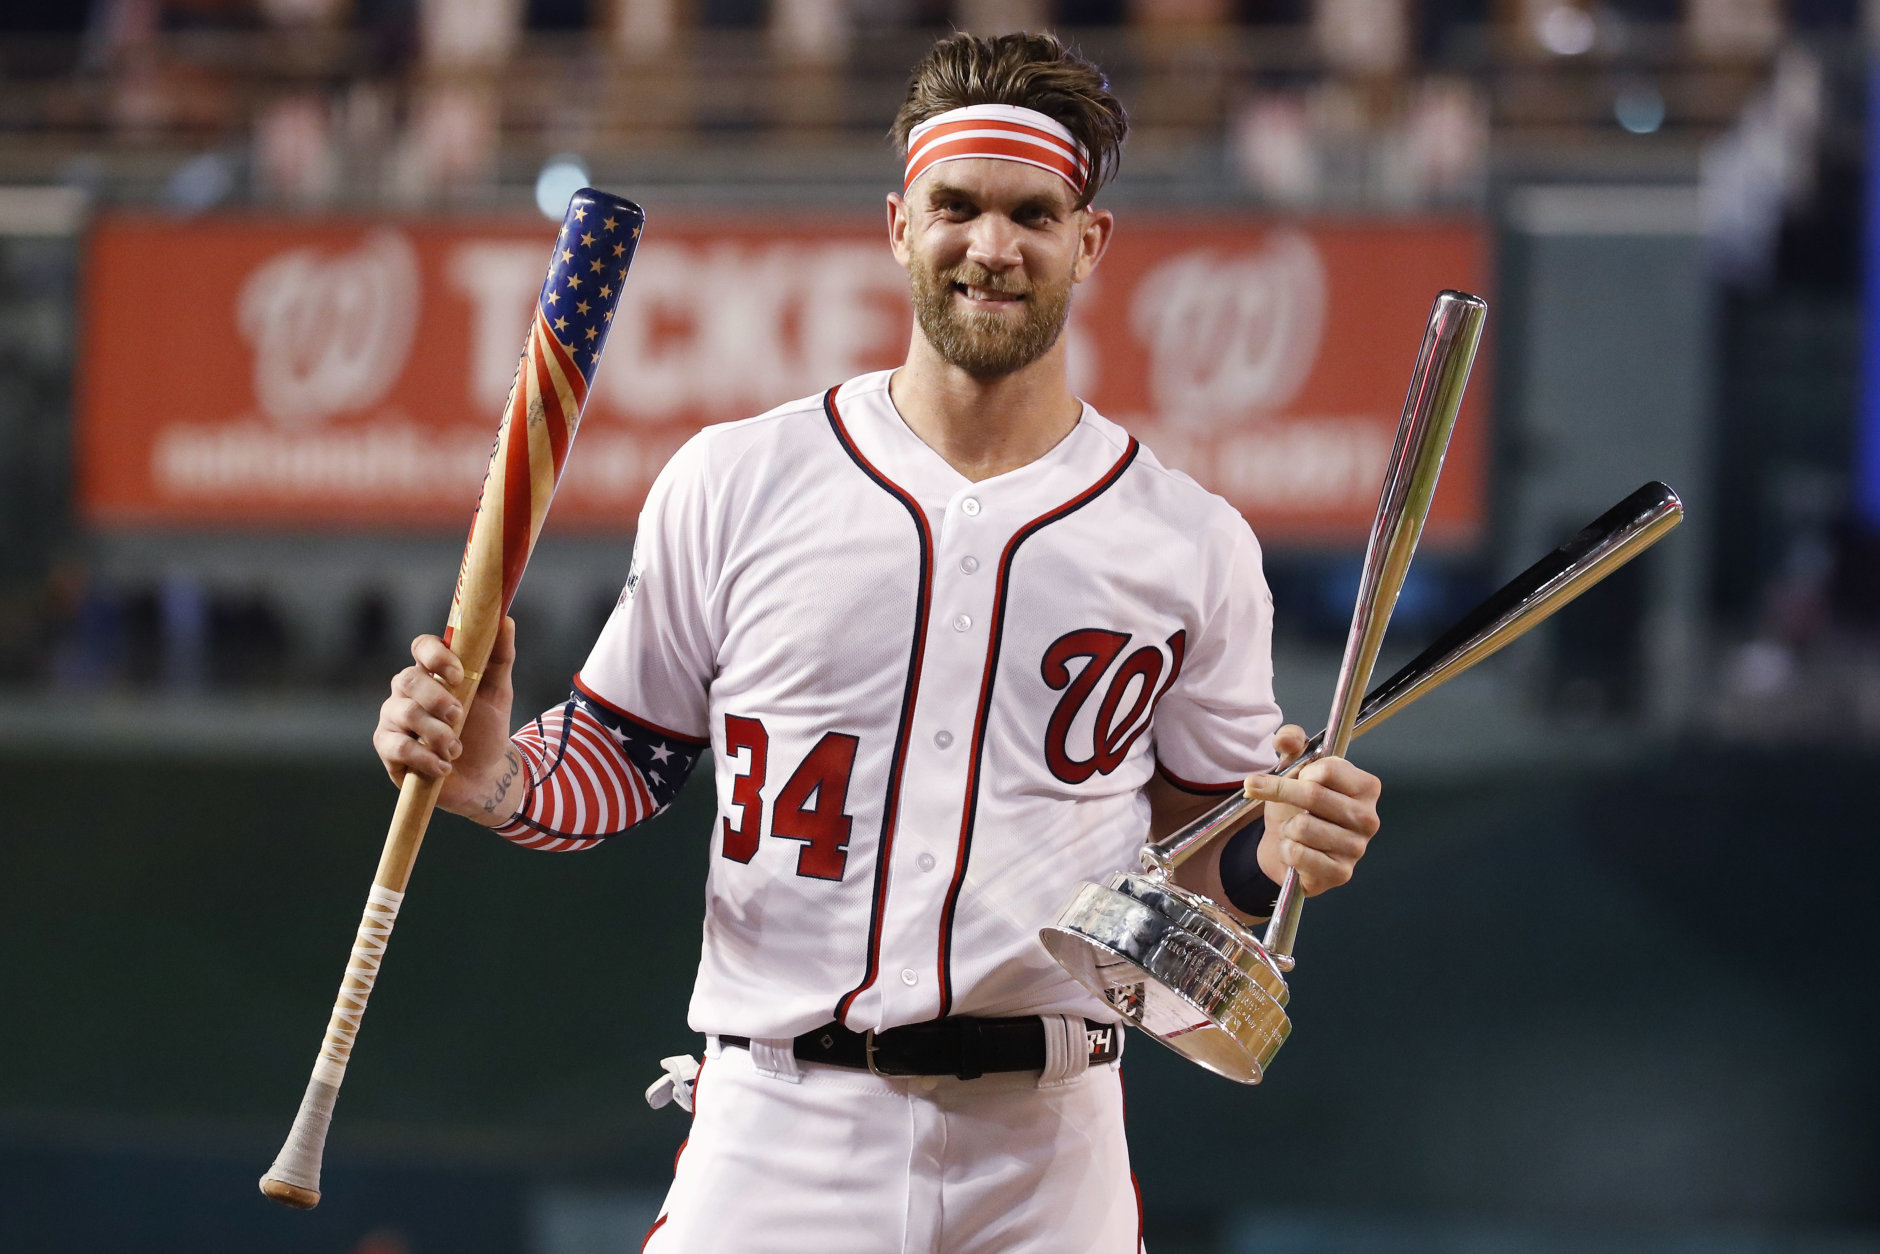 Washington Nationals Bryce Harper (34) holds his bat and the trophy after winning the Major League Baseball Home Run Derby Monday, July 16, 2018 in Washington. (AP Photo/Alex Brandon)